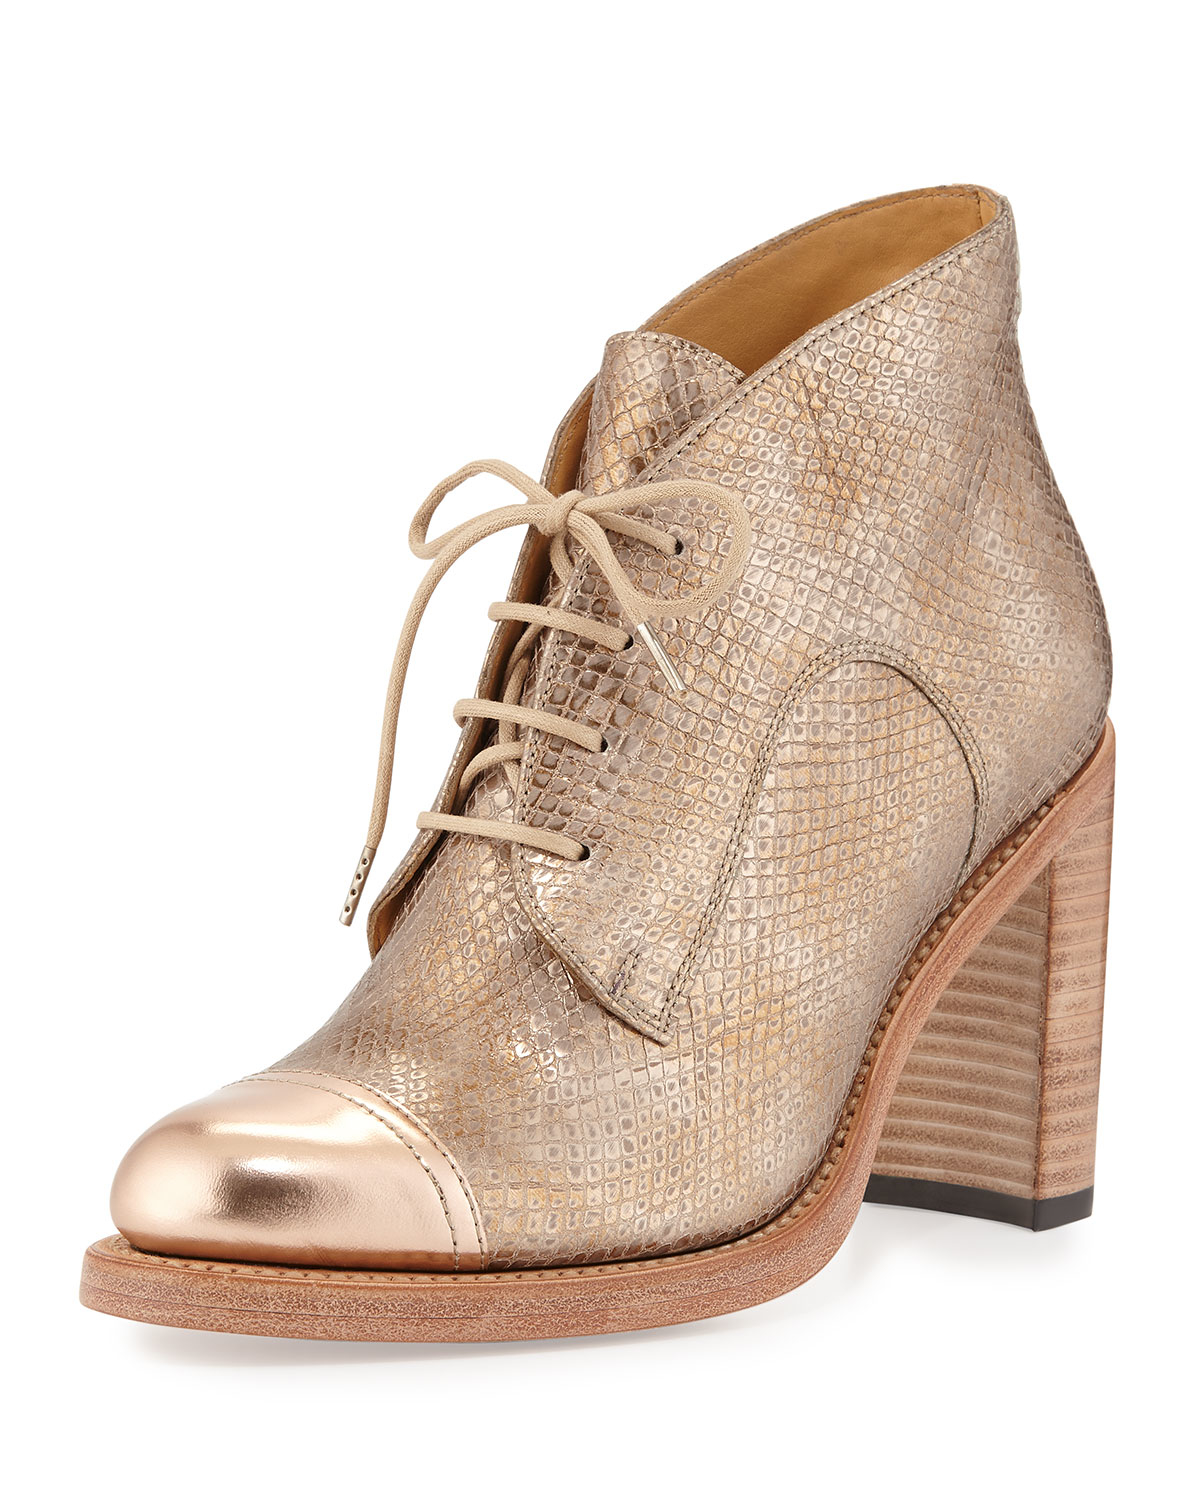 "angela scott, the office of angela scott, the office of angela scott boots, the office of angela scott shoes, the office of angela scott booties, the office of angela scott miss madeline, the office of angela scott miss madeline boots, gold boots, gold booties, rose gold boots, rose gold booties, Faircloth Striped Linen Jogger, faircloth, faircloth jogger, striped jogger, ralph lauren dog, ralph lauren dog sweater, ralph lauren cashmere dog sweater, cashmere dog sweater, embroidered dog sweater, embroidered cashmere dog sweater, vivian chan, vivian chan clothing, vivian chan designer, vivian chan top, vivian chan lillian, vivian chan lillian top, vivian chan rosalie, vivian chan rosalie skort, vivian chan skirt, vivian chan skort, Mewgaroo pet pouch sweatshirt, pet pouch sweatshirt, Mewgaroo, Kiki de Montparnasse ""Sleep/F**k"" blindfold, Kiki de Montparnasse, Kiki de Montparnasse blindfold, Kiki de Montparnasse sleeping mask, sleep fuck blindfold, sleep fuck sleeping mask,Mr. + Mrs. Italy miniparka, Mr. + Mrs. Italy parka, Mr. + Mrs. Italy miniparka fur, Mr. + Mrs. Italy fur parka, Mr. + Mrs. Italy miniparka multicolor, Mr. + Mrs. Italy miniparka fur, Mr. + Mrs. Italy miniparka multicolor fur, Adidas ""Stan Smith"" in white + copper, stan smith, stan smith white, stan smith white copper, adidas white, adidas white copper, Dom Vetro ""Marbled Onyx Primo"" sunglasses, dom vetro primo, dom vetro primo sunglasses, Dom Vetro Marbled Onyx Primo sunglasses, donald robertson, donald robertson royal tenenbaums, royal tenenbaums, donald robertson royal tenenbaum print - Top 10 Buys I'm Sweating Right Now by popular LA style blogger The LA Survival Guide"